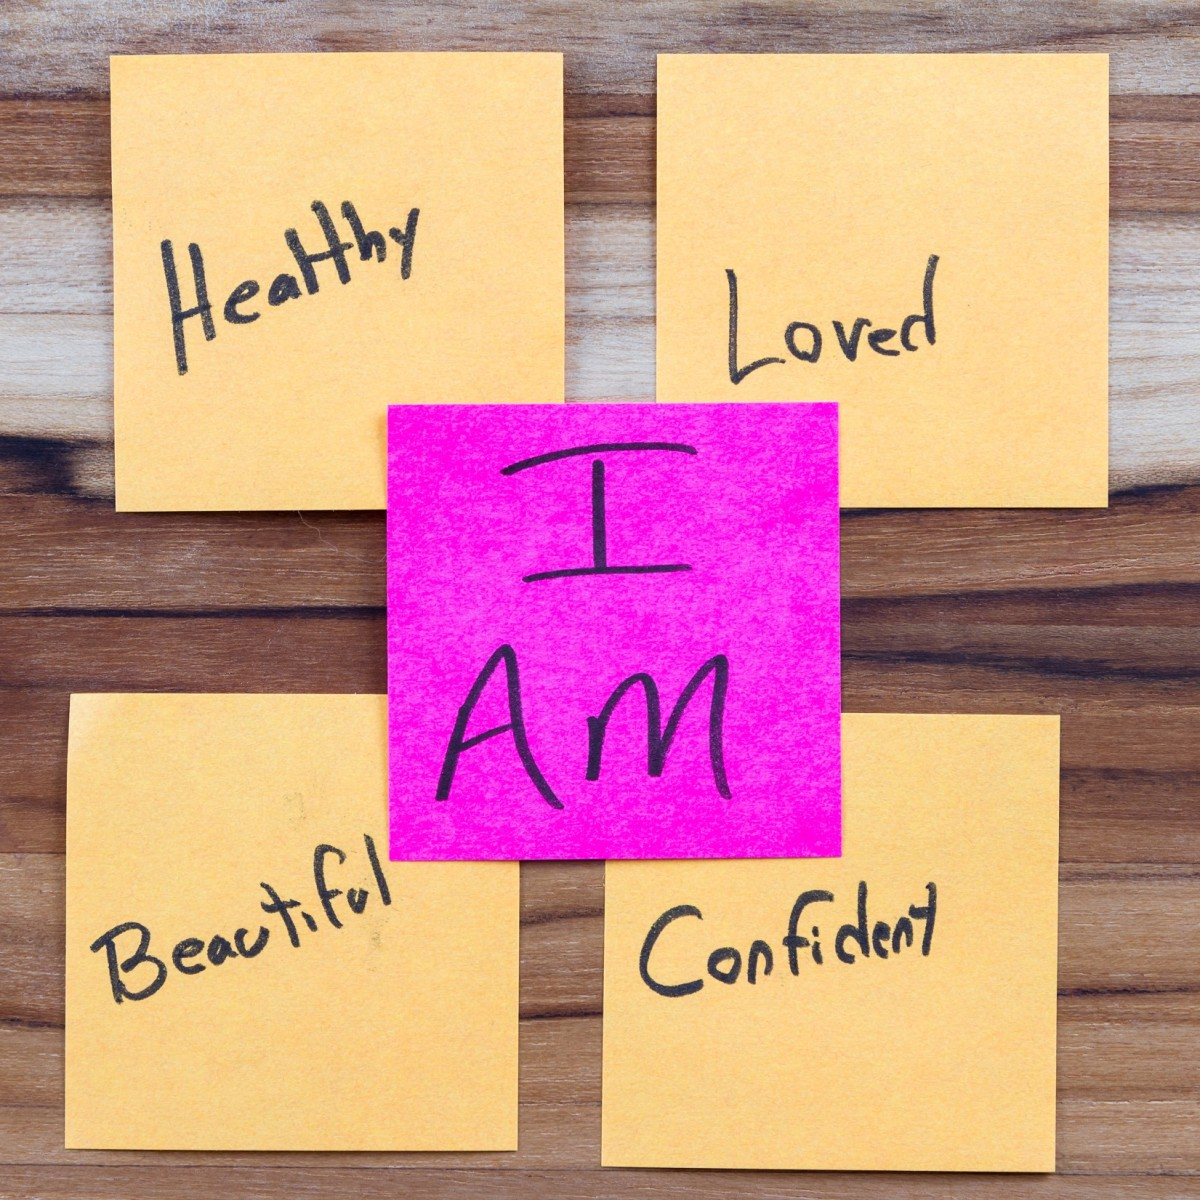 """""""I AM"""" mantras are powerful when written on sticky notes to help us change our subconscious beliefs"""